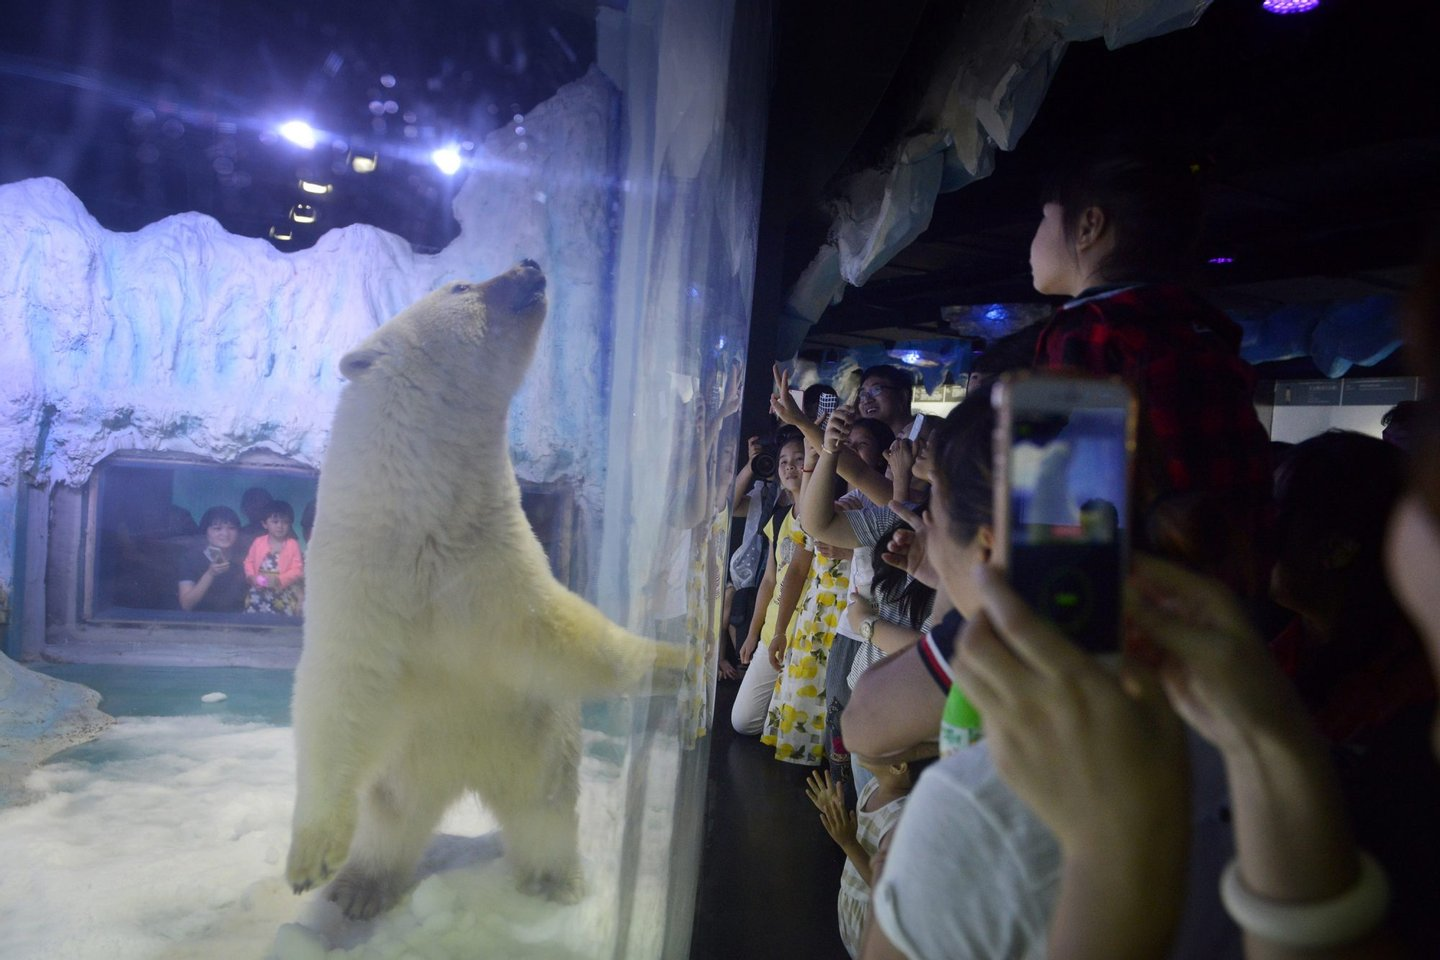 """TOPSHOT - This picture taken on July 24, 2016 shows visitors taking photos of a polar bear inside its enclosure at the Grandview Mall Aquarium in the southern Chinese city of Guangzhou. A Chinese aquarium holding a forlorn-looking polar bear named Pizza said on September 20 it has """"no need"""" for foreign interference, after activists offered to move the animal to a British zoo. / AFP / - (Photo credit should read -/AFP/Getty Images)"""